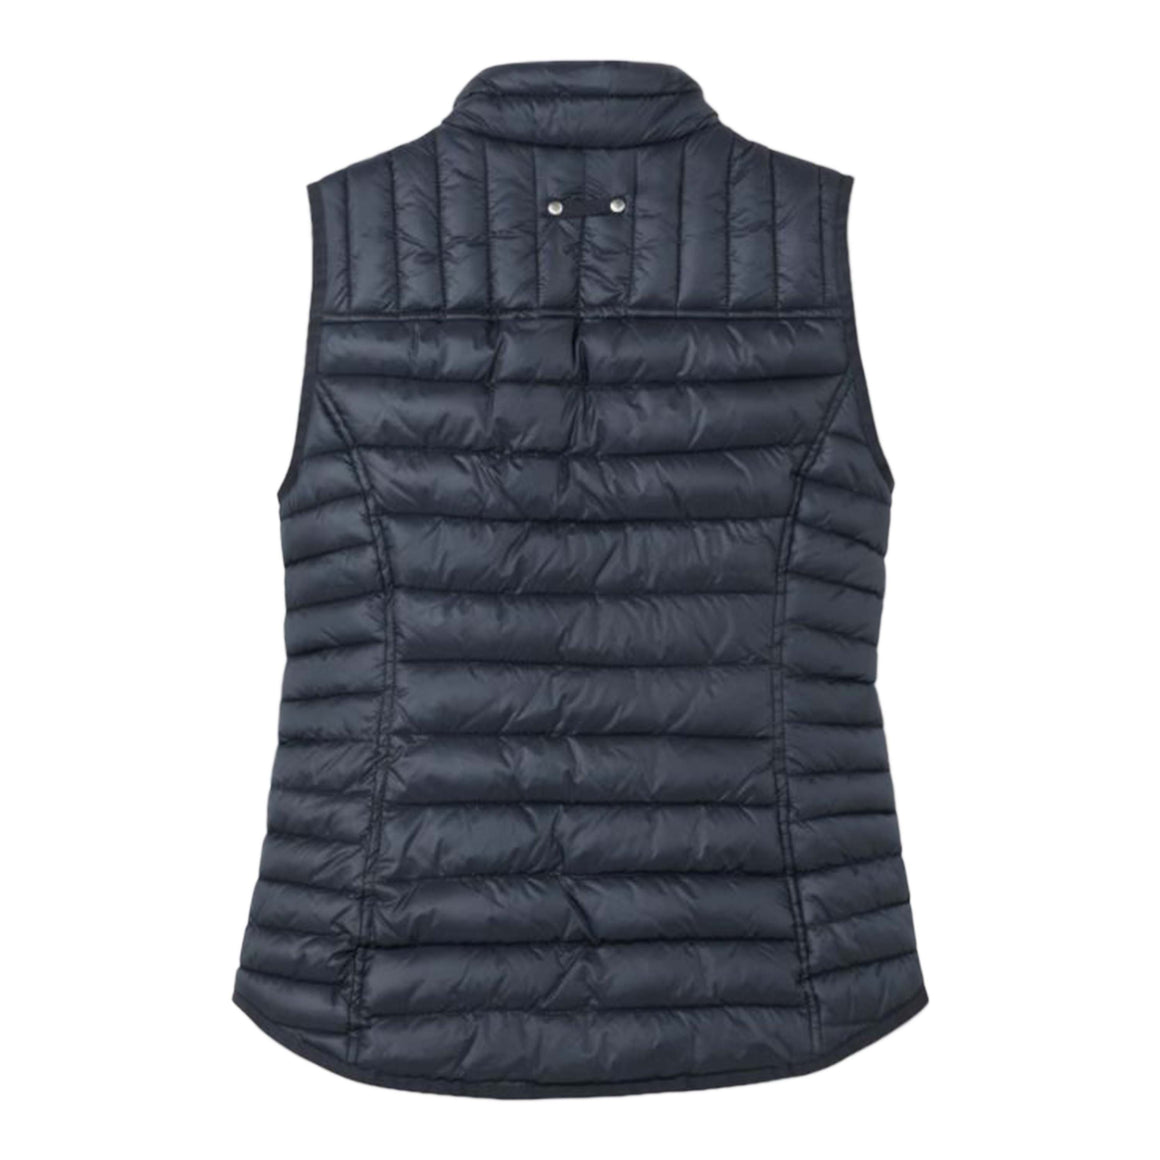 Furlton Gilet for Women in Navy